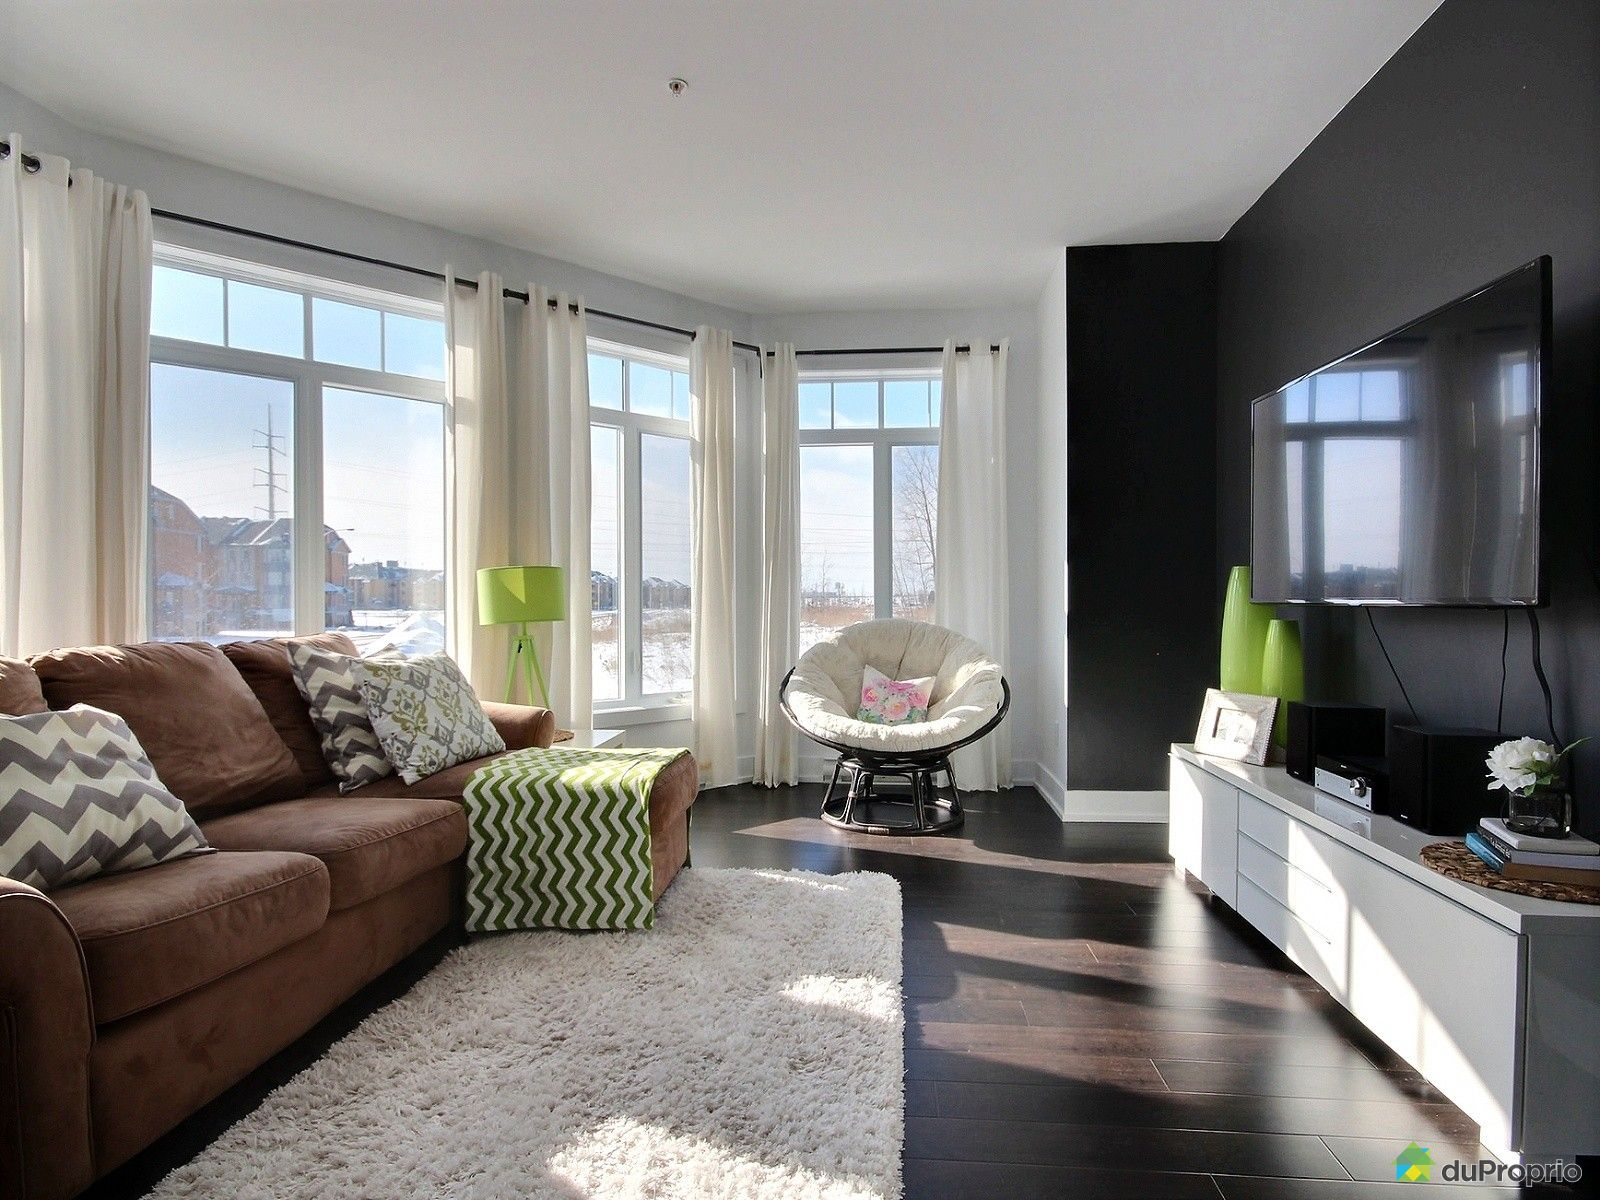 Condo for sale in brossard 101 6250 boulevard chevrier for Living room 6250 hollywood blvd